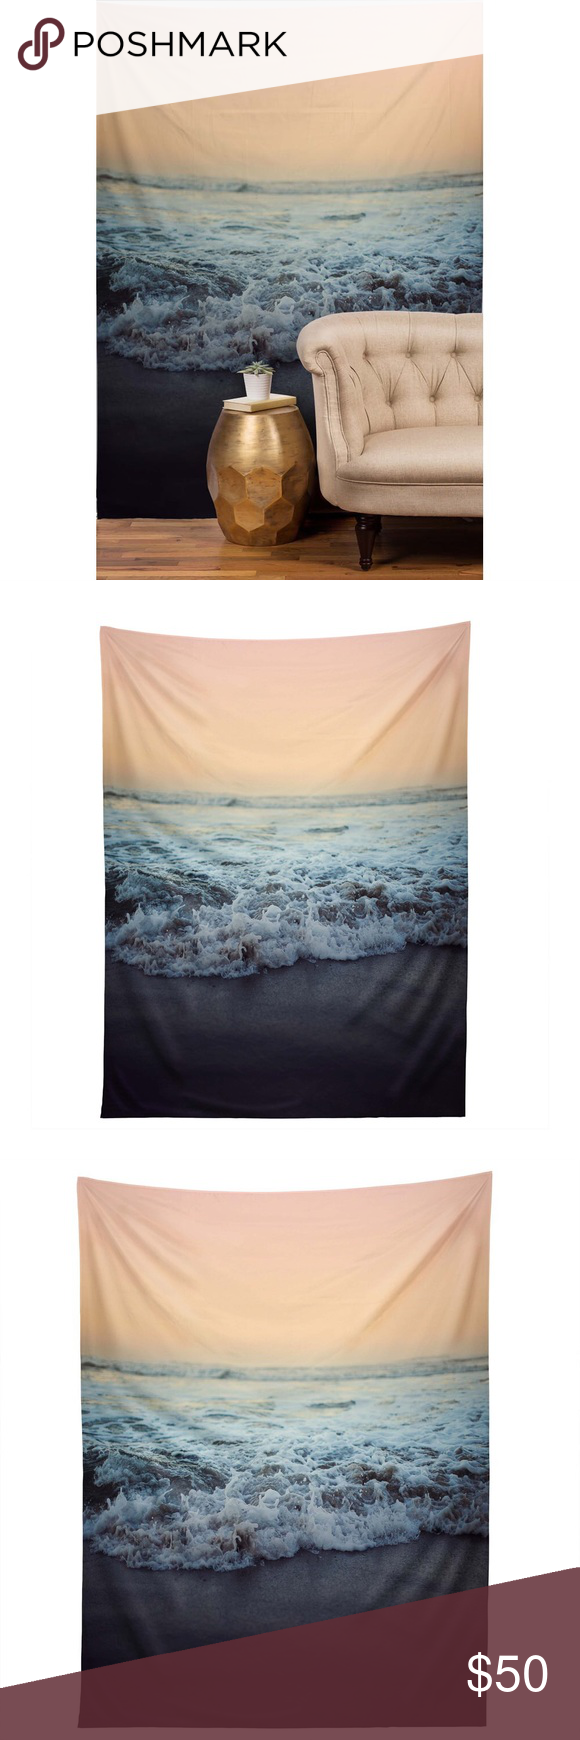 Crash Into Me ocean wall art tapestry Like new condition. Beautiful. I love this but it just doesn't fit in my new space. My loss is your gain! Urban Outfitters Other